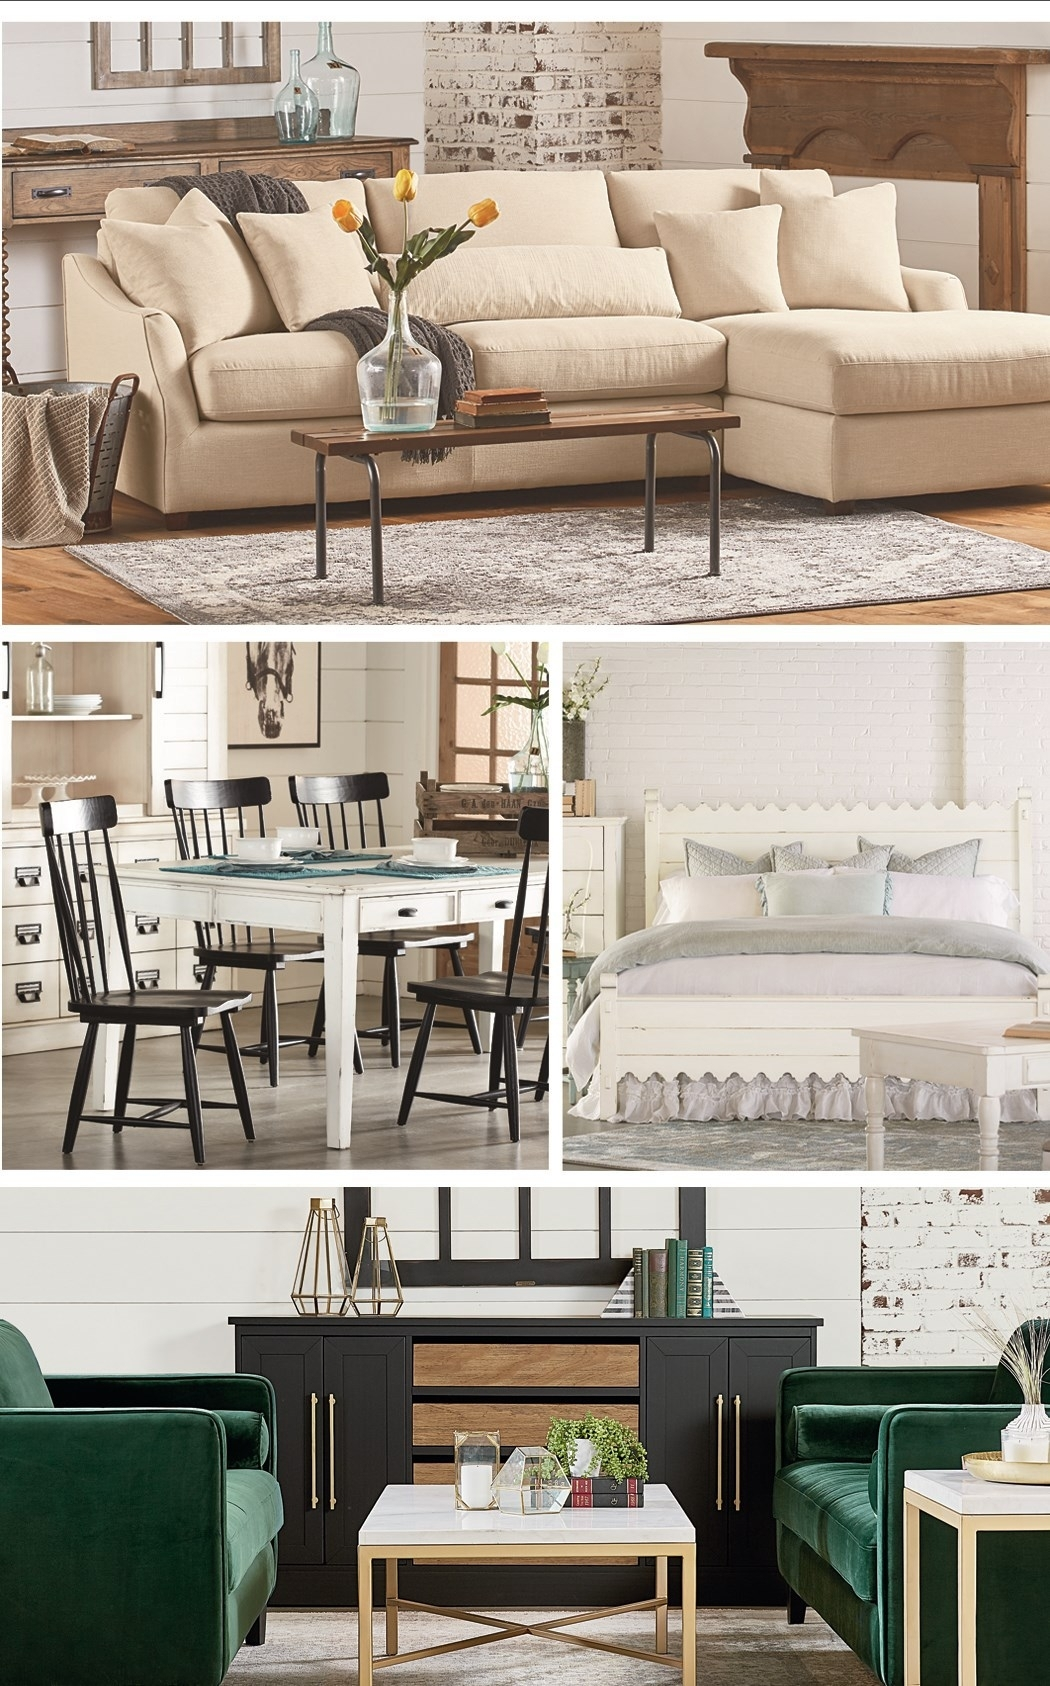 Magnolia Homejoanna Gaines | Jacksonville, Gainesville, Palm Regarding Magnolia Home Homestead 4 Piece Sectionals By Joanna Gaines (View 13 of 25)